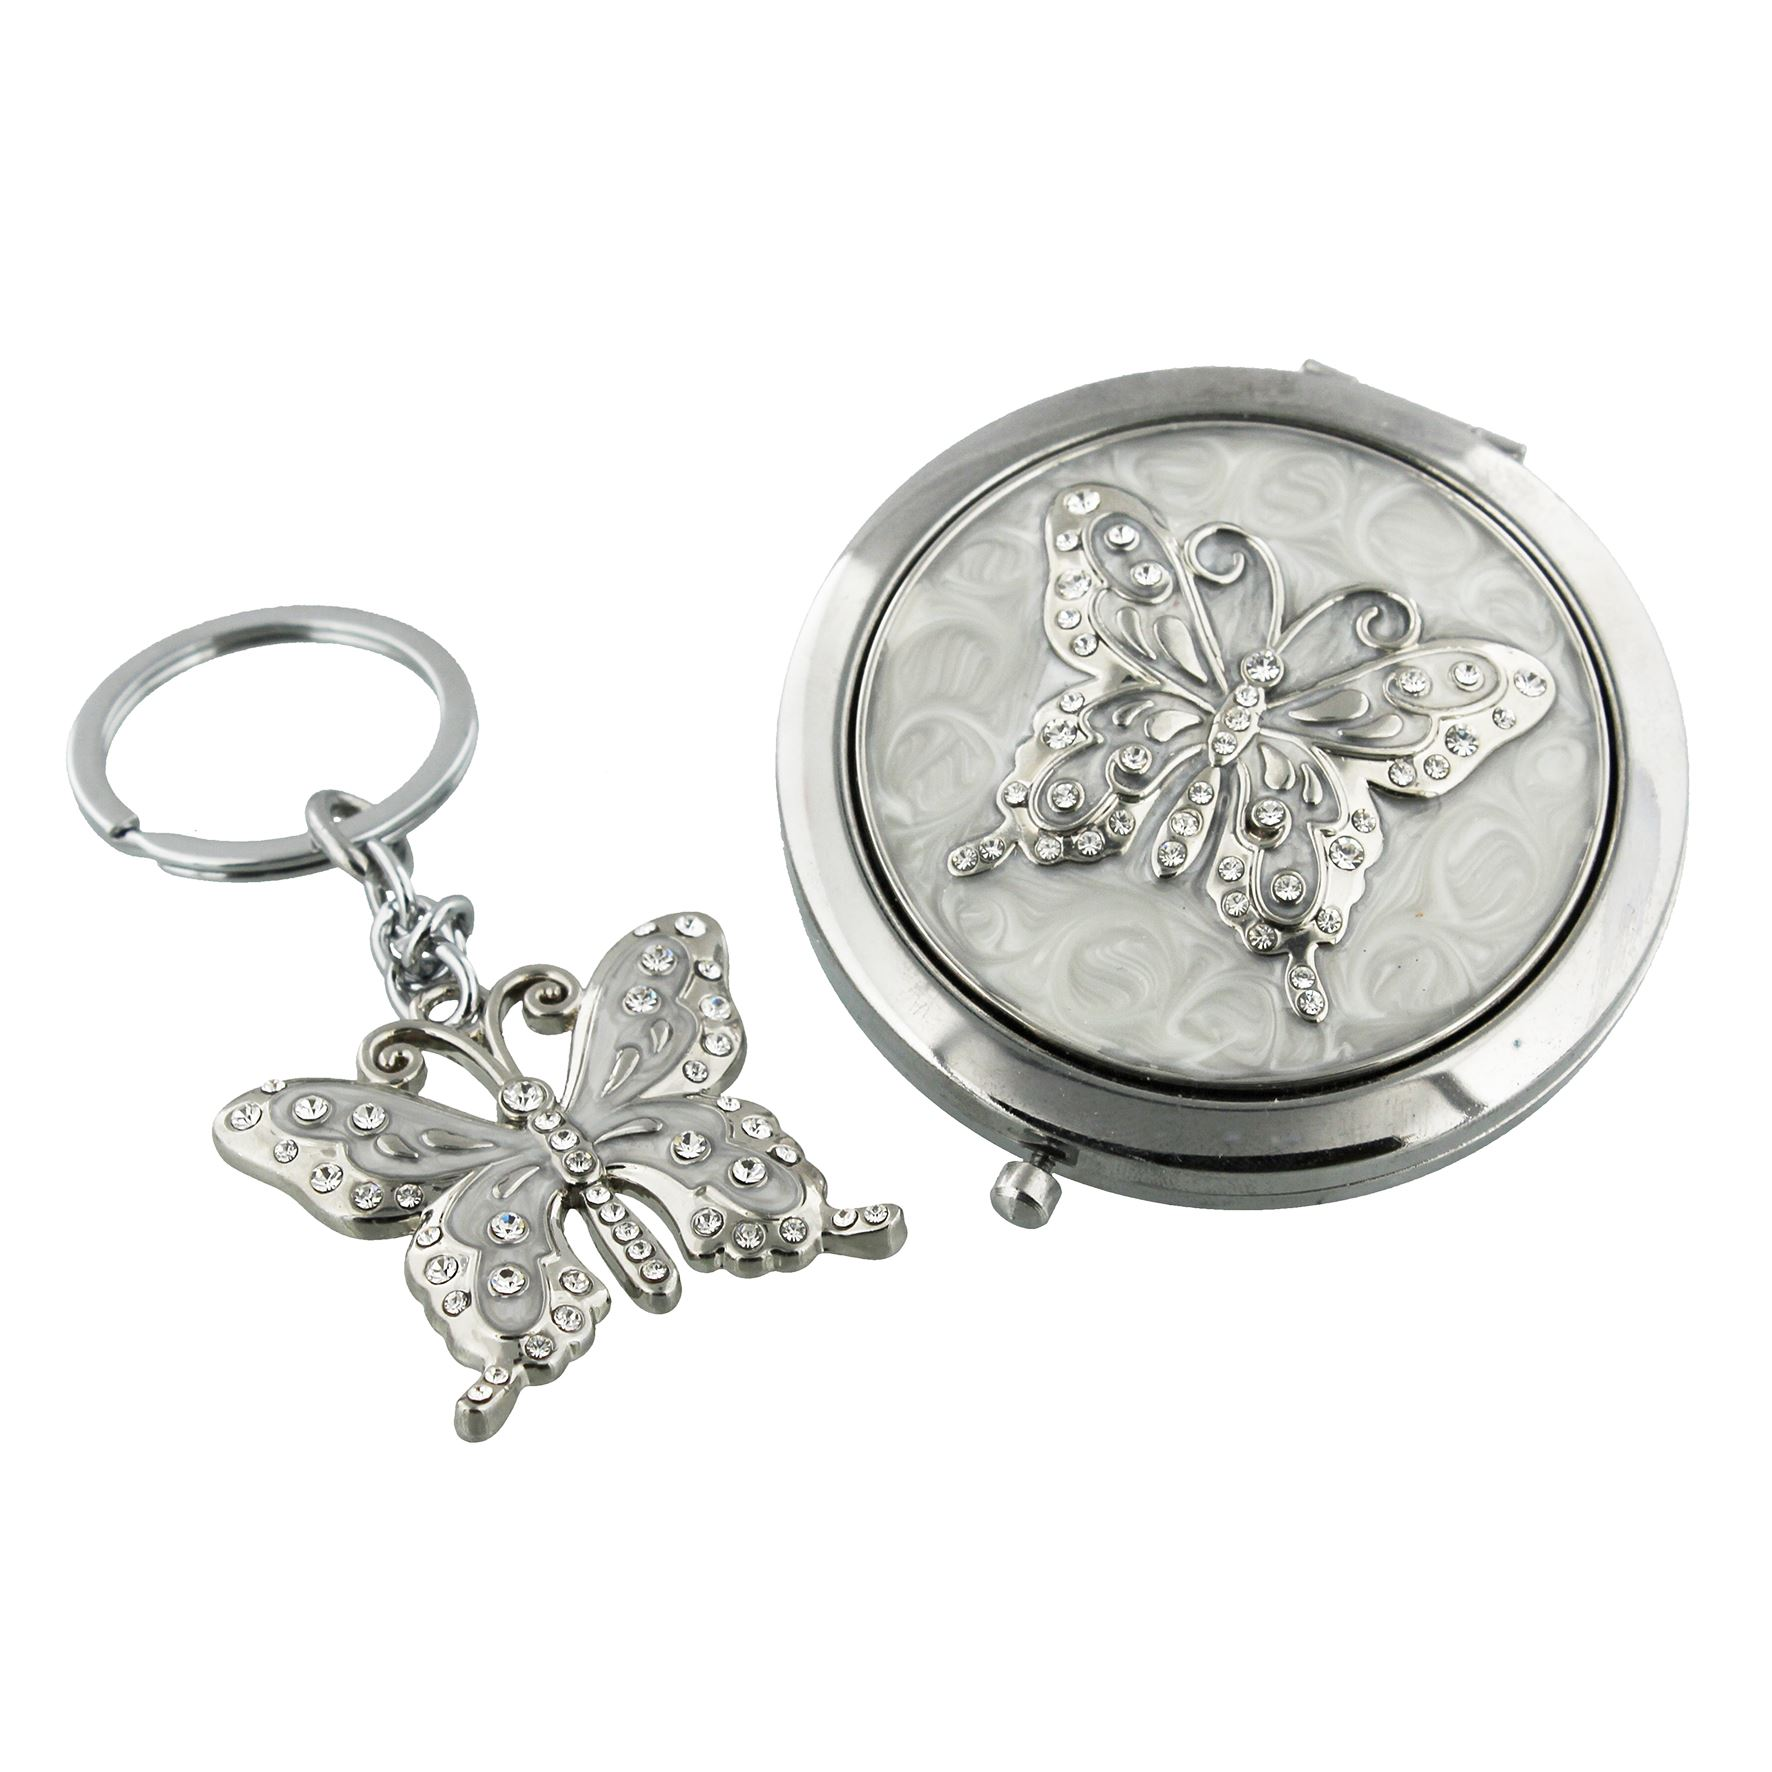 Sophia Silverplated Compact Mirror & Keyring Set Butterfly